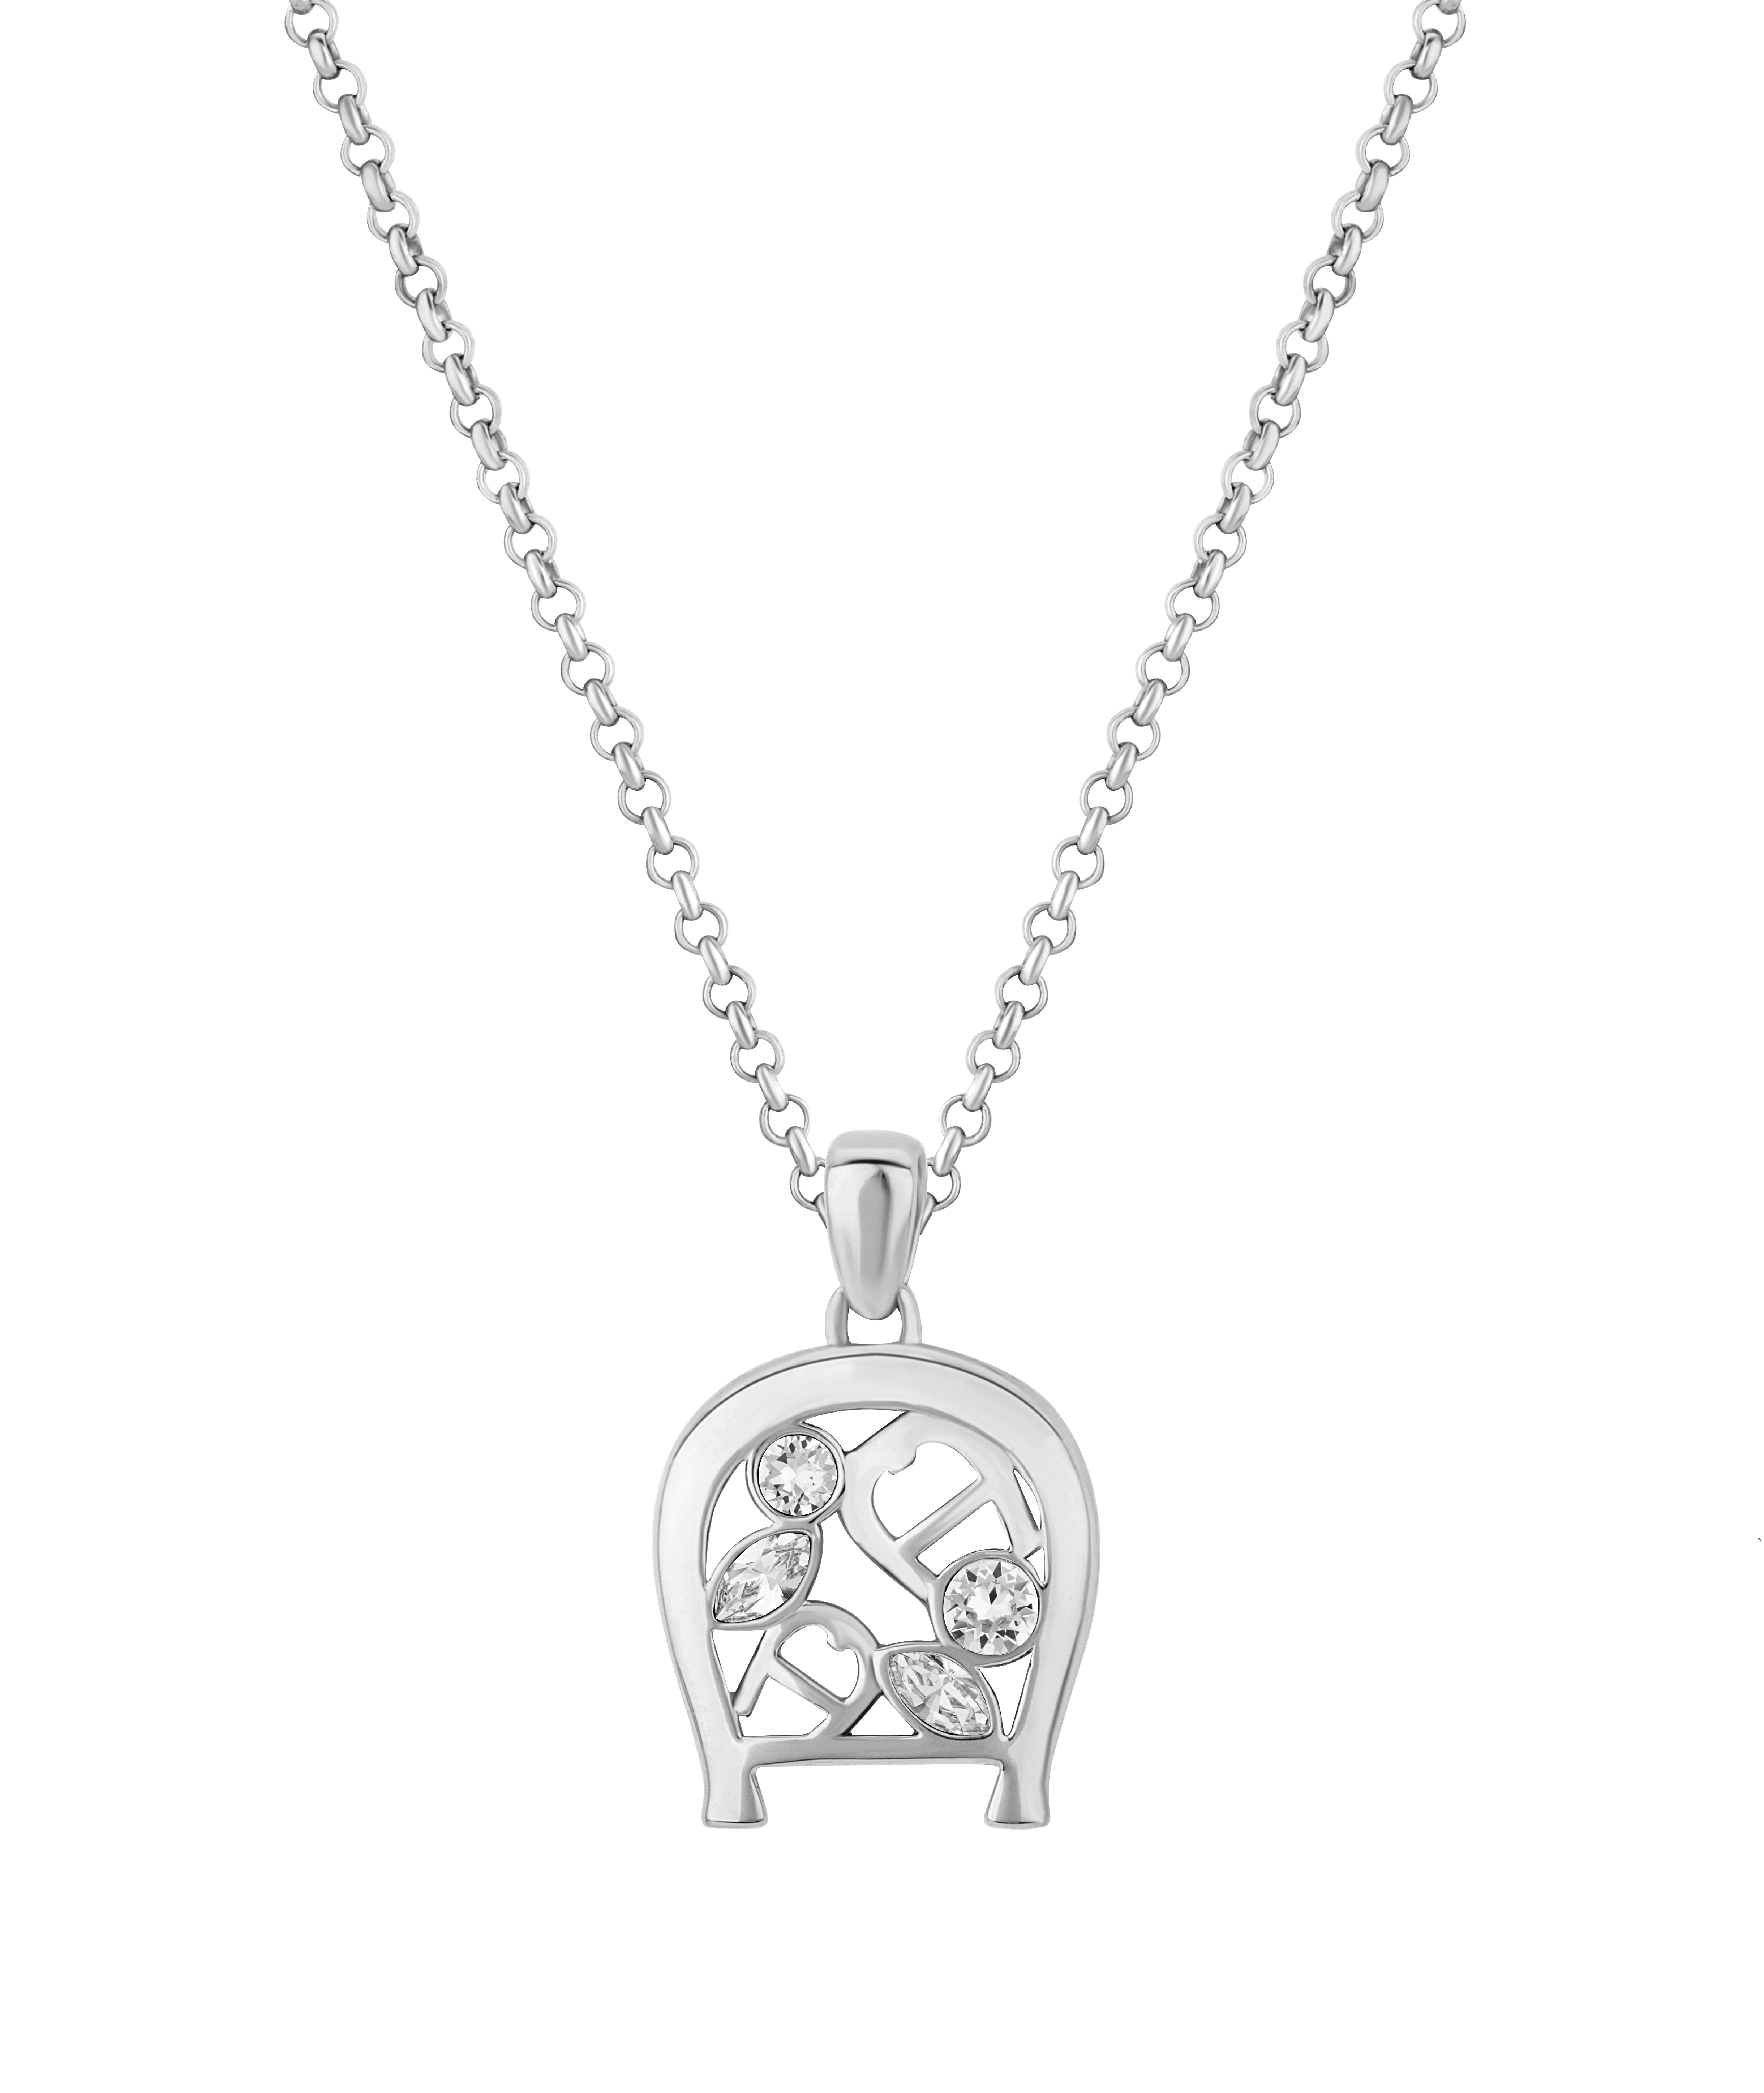 Aigner Necklace, Aigner Jewelry